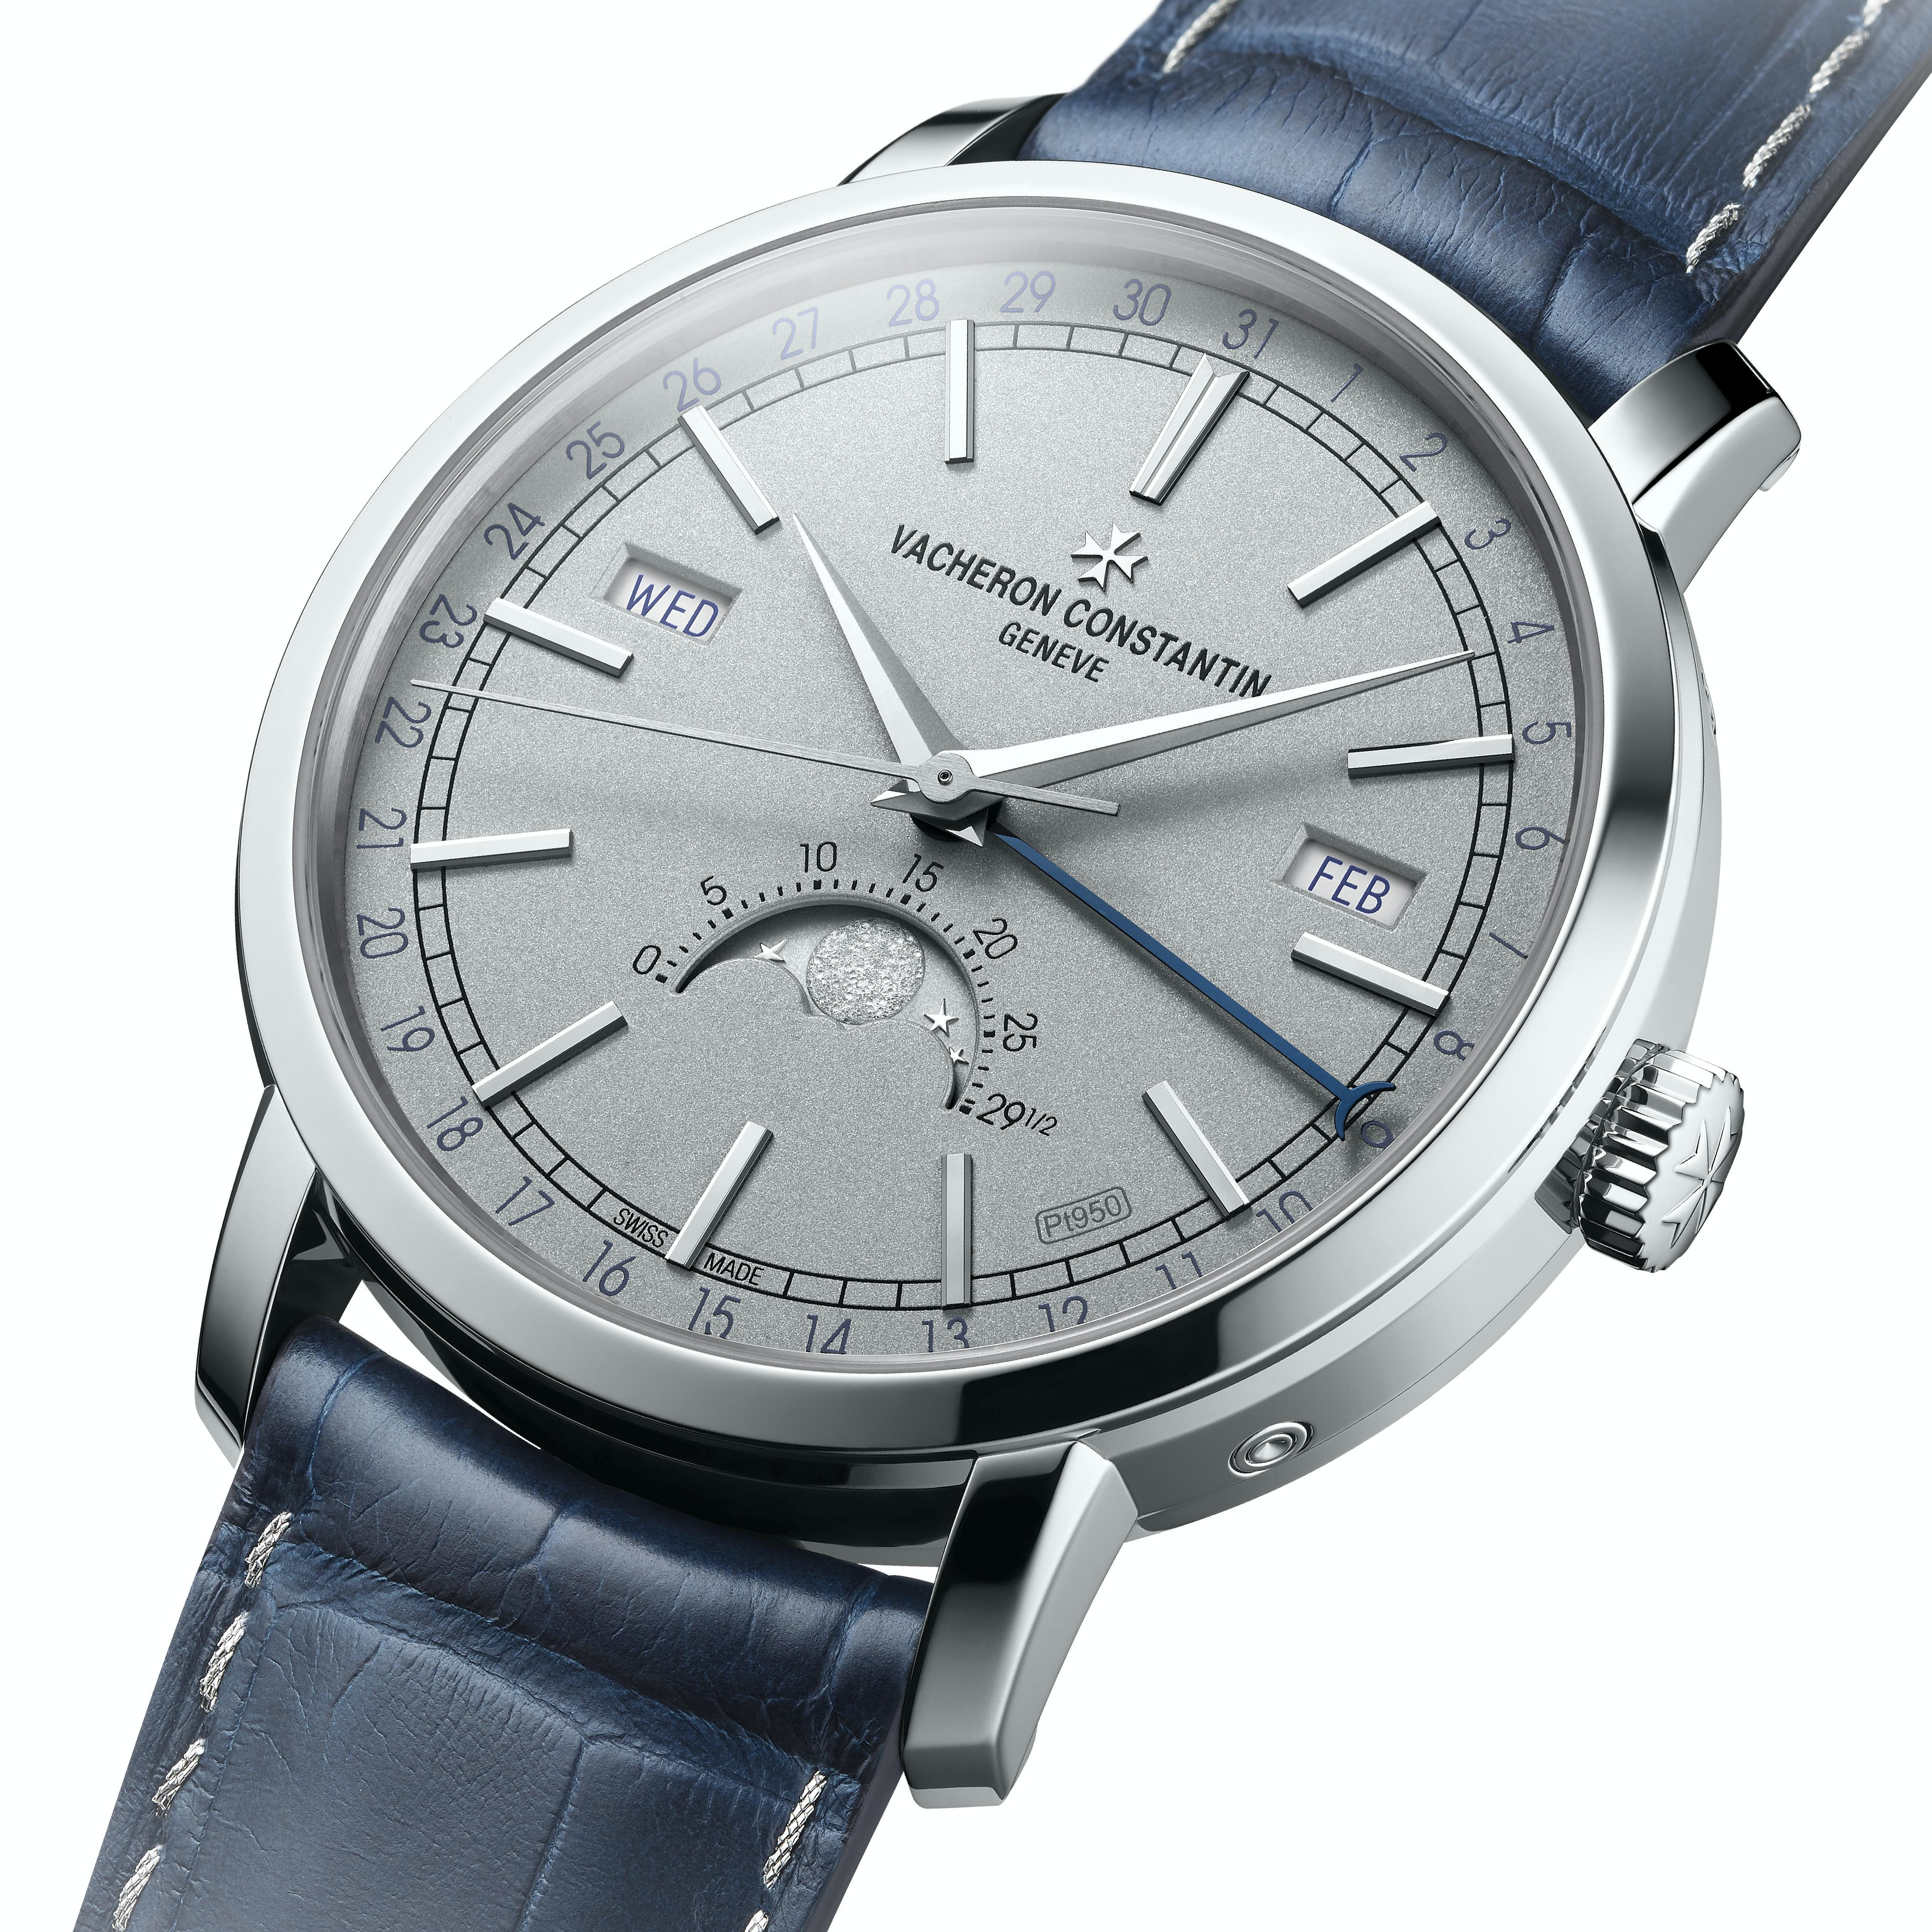 Introducing: The Vacheron Constantin Traditionelle Complete Calendar Collection Excellence Platine Introducing: The Vacheron Constantin Traditionelle Complete Calendar Collection Excellence Platine VC3